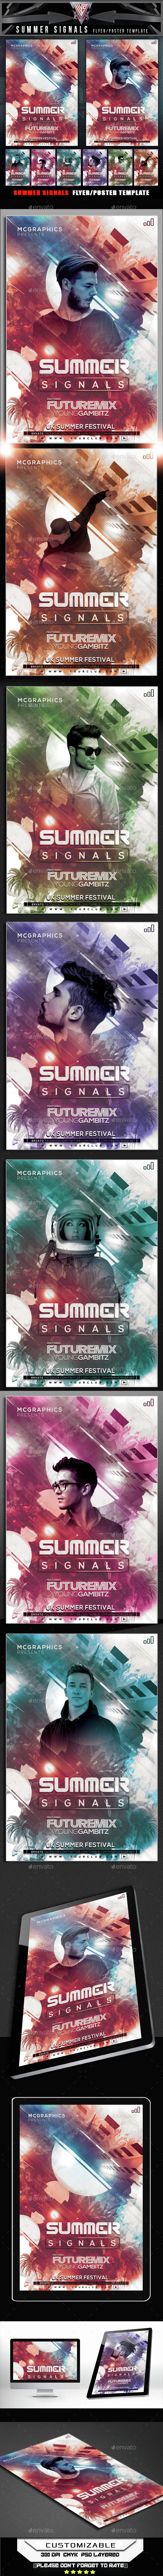 Summer Signals Flyer Template - Clubs & Parties Events